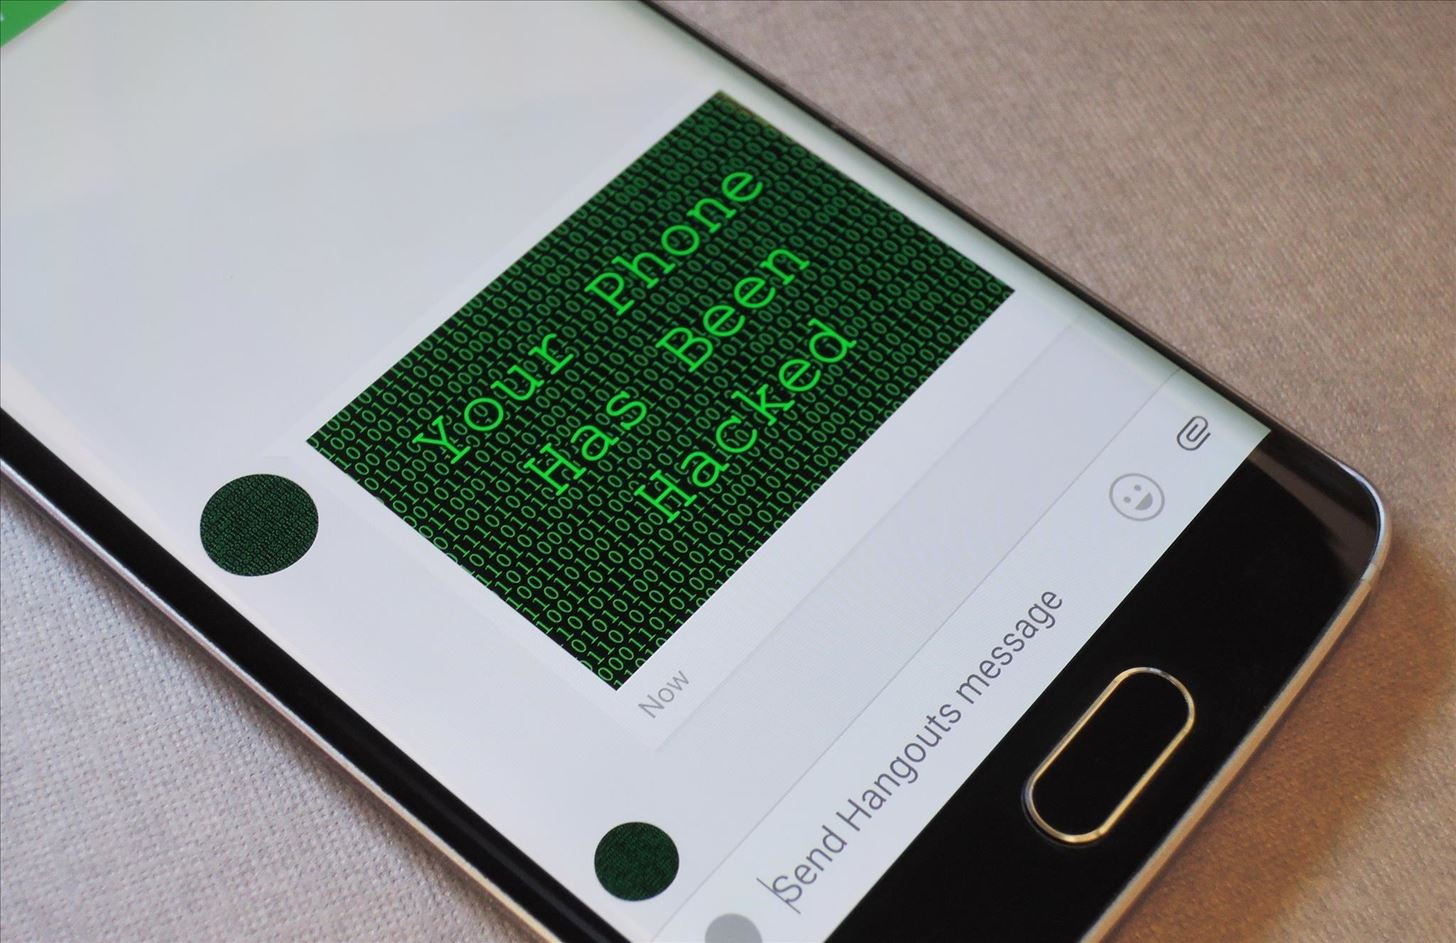 Tell Your Friends: How to Protect Yourself from Android's Biggest Security Flaw in Years